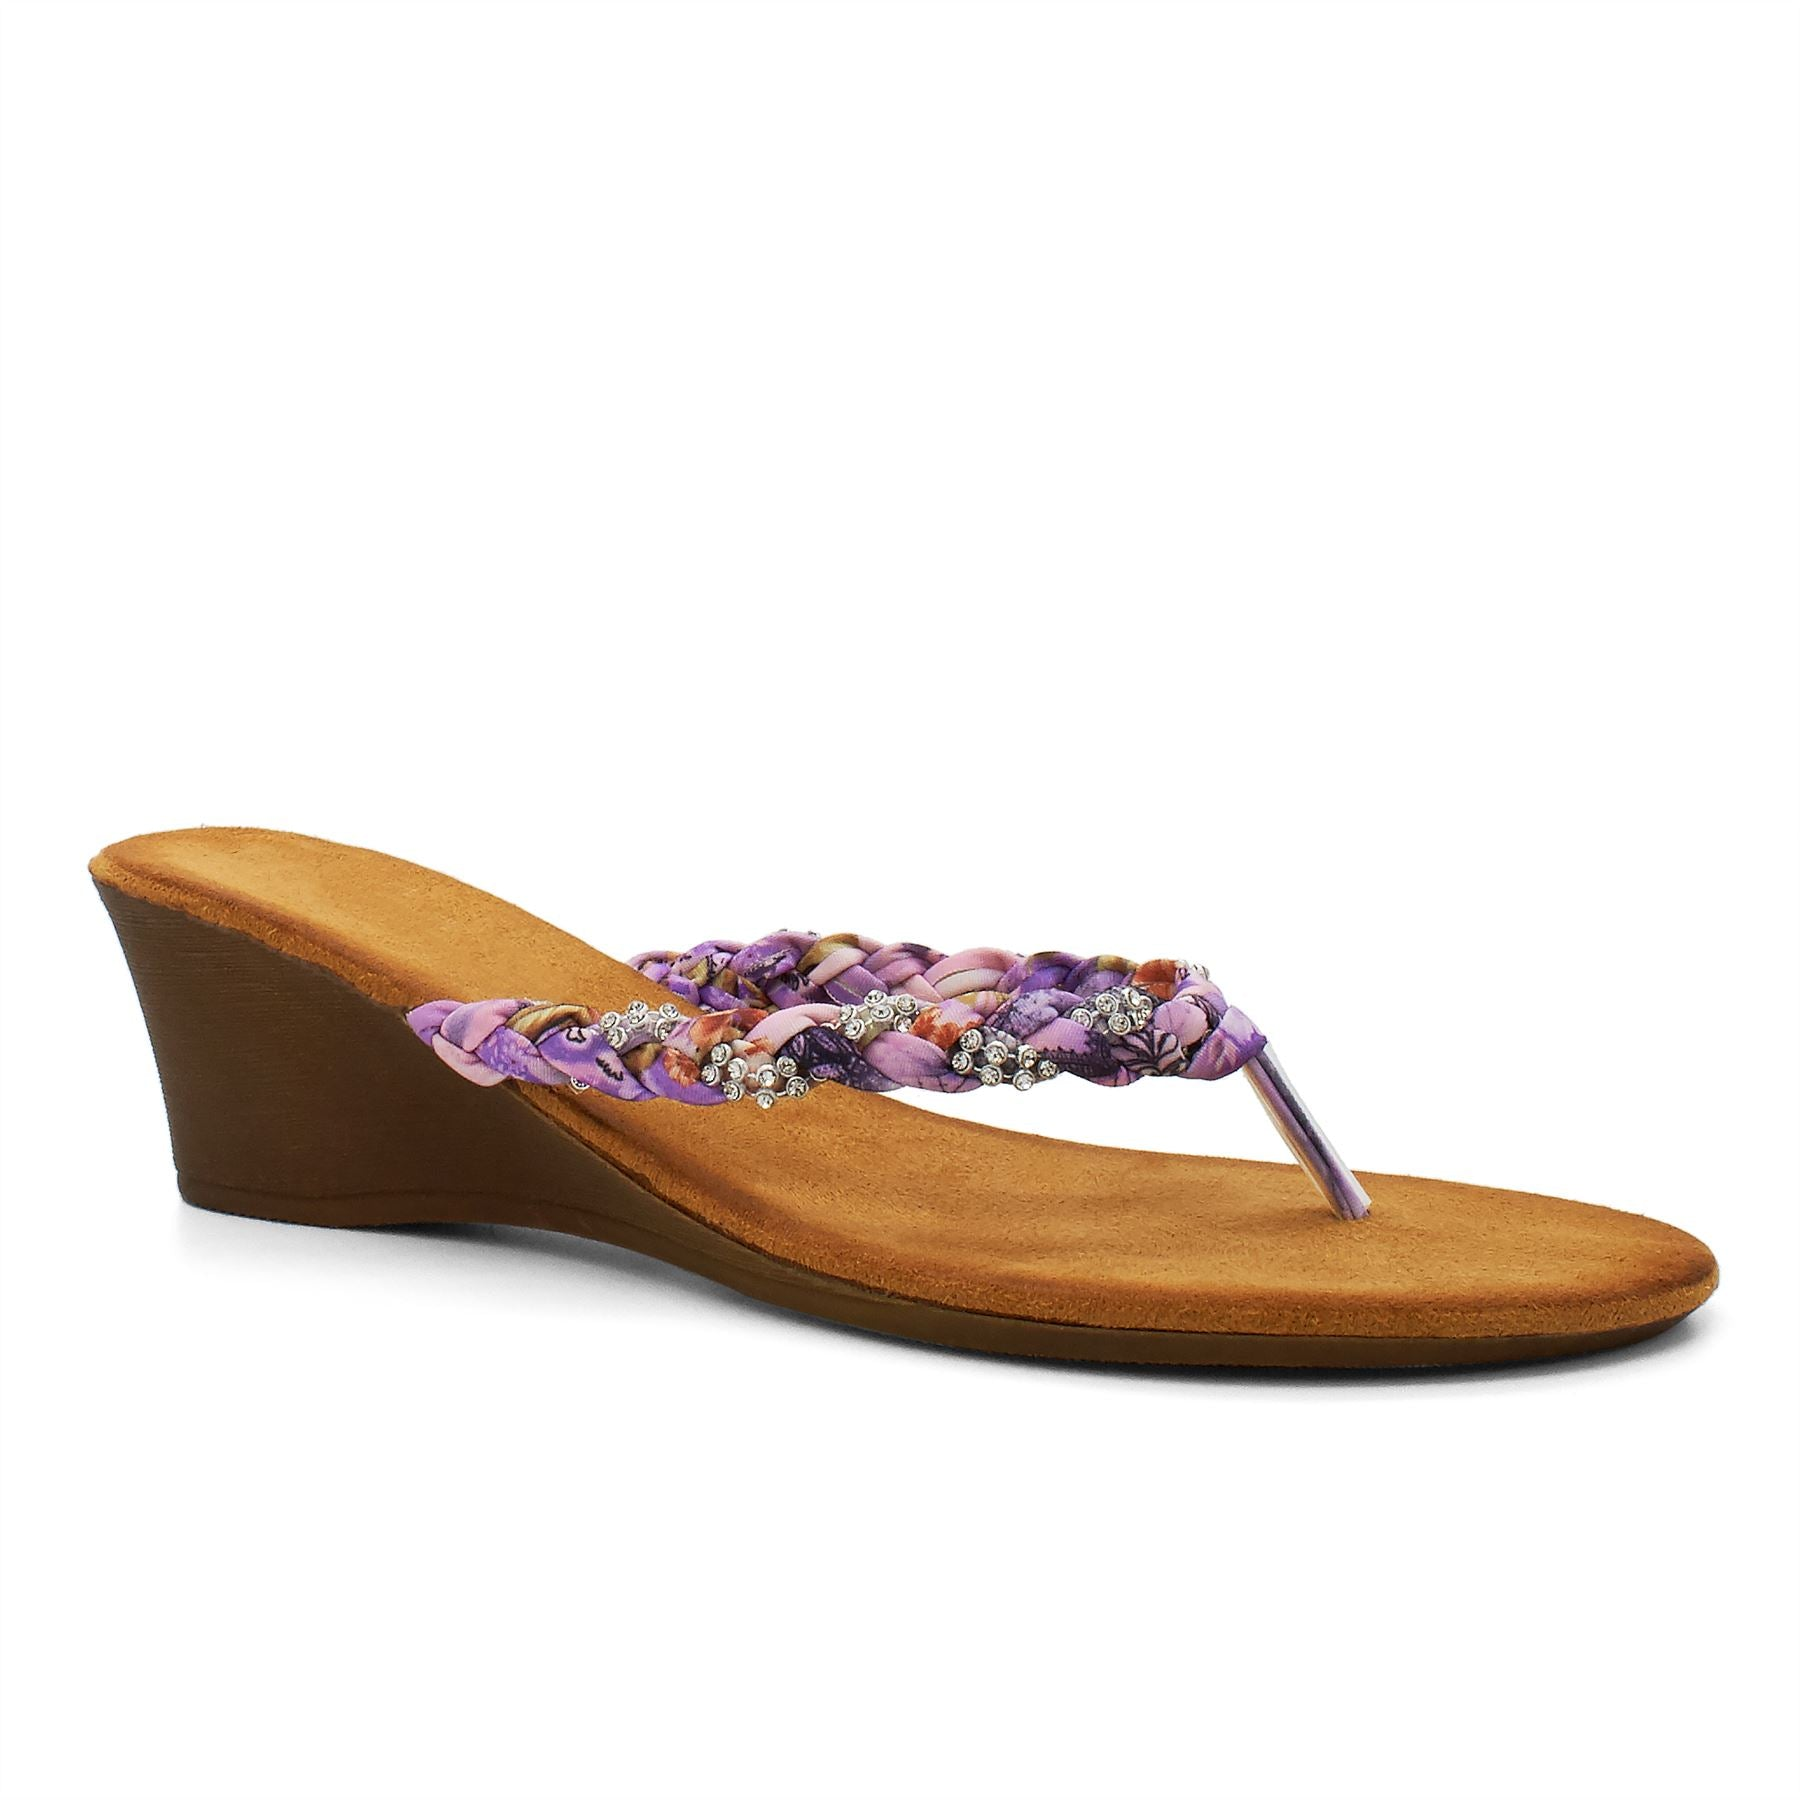 Purple Floral Embellished Wedge Sandals